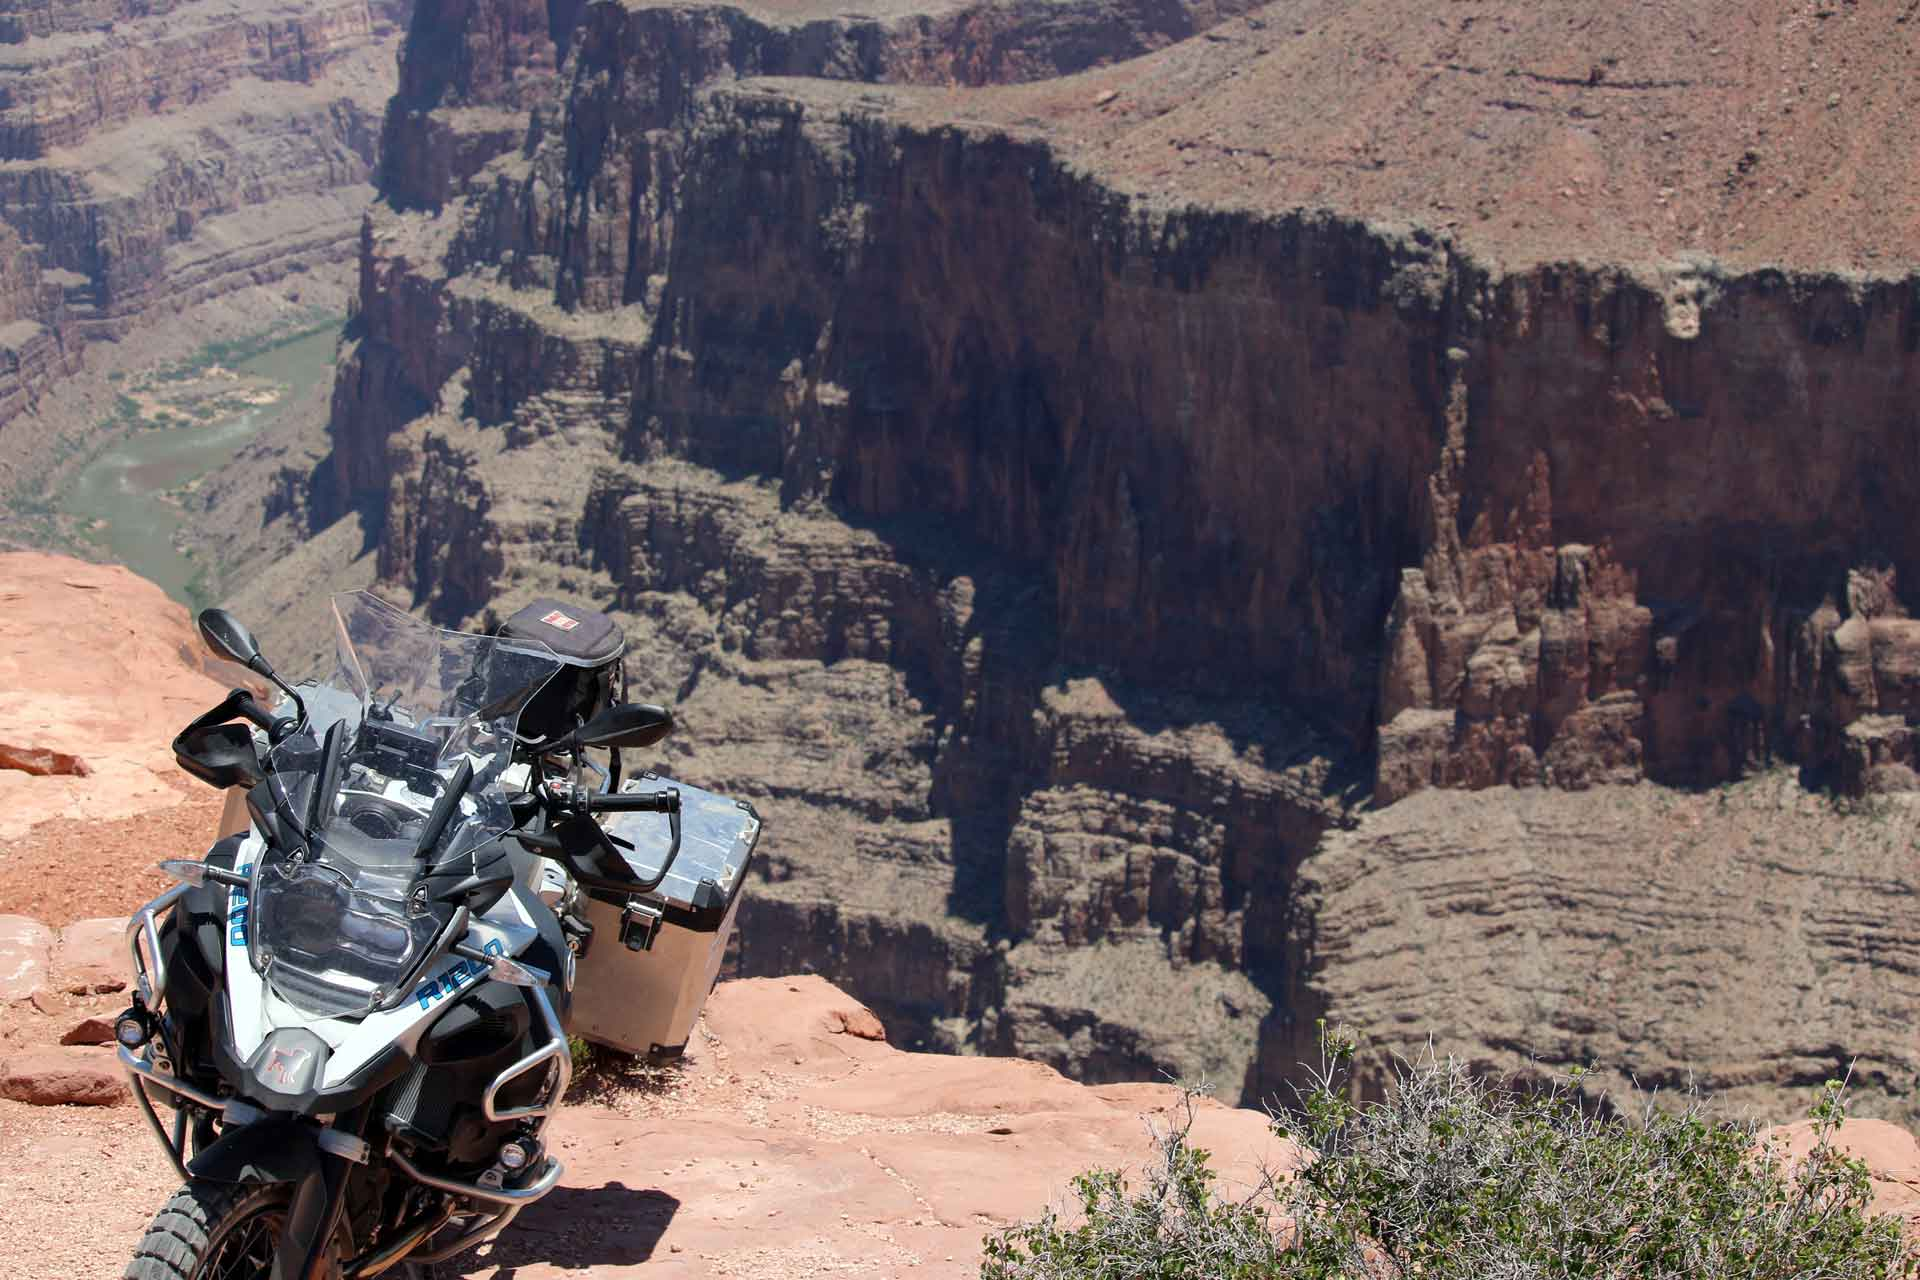 Utah Backcountry Motorcycle Discovery Expedition | RawHyde